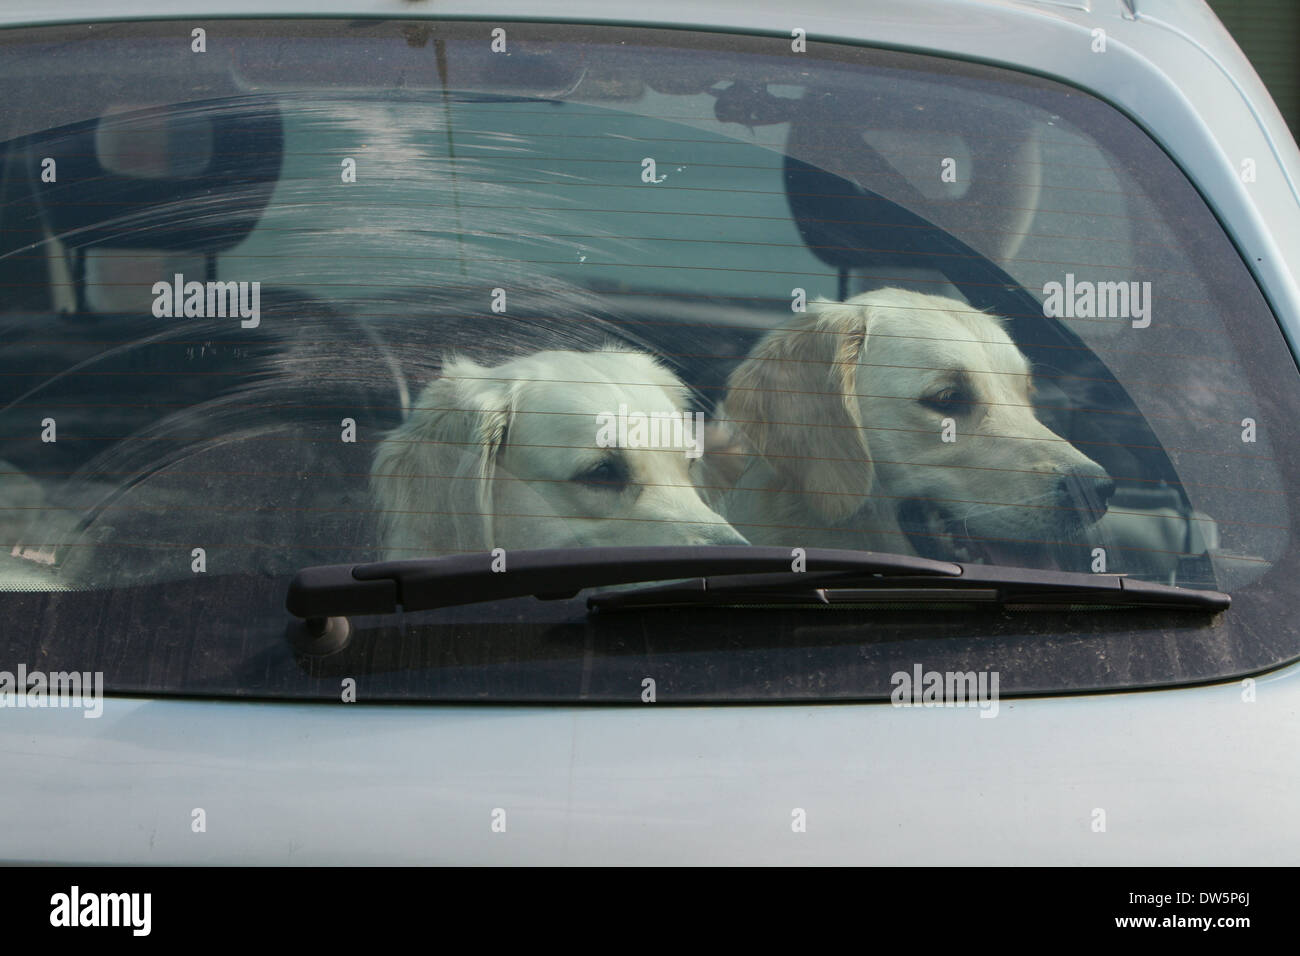 Dog Golden Retriever / two adults in a car looking out window - Stock Image